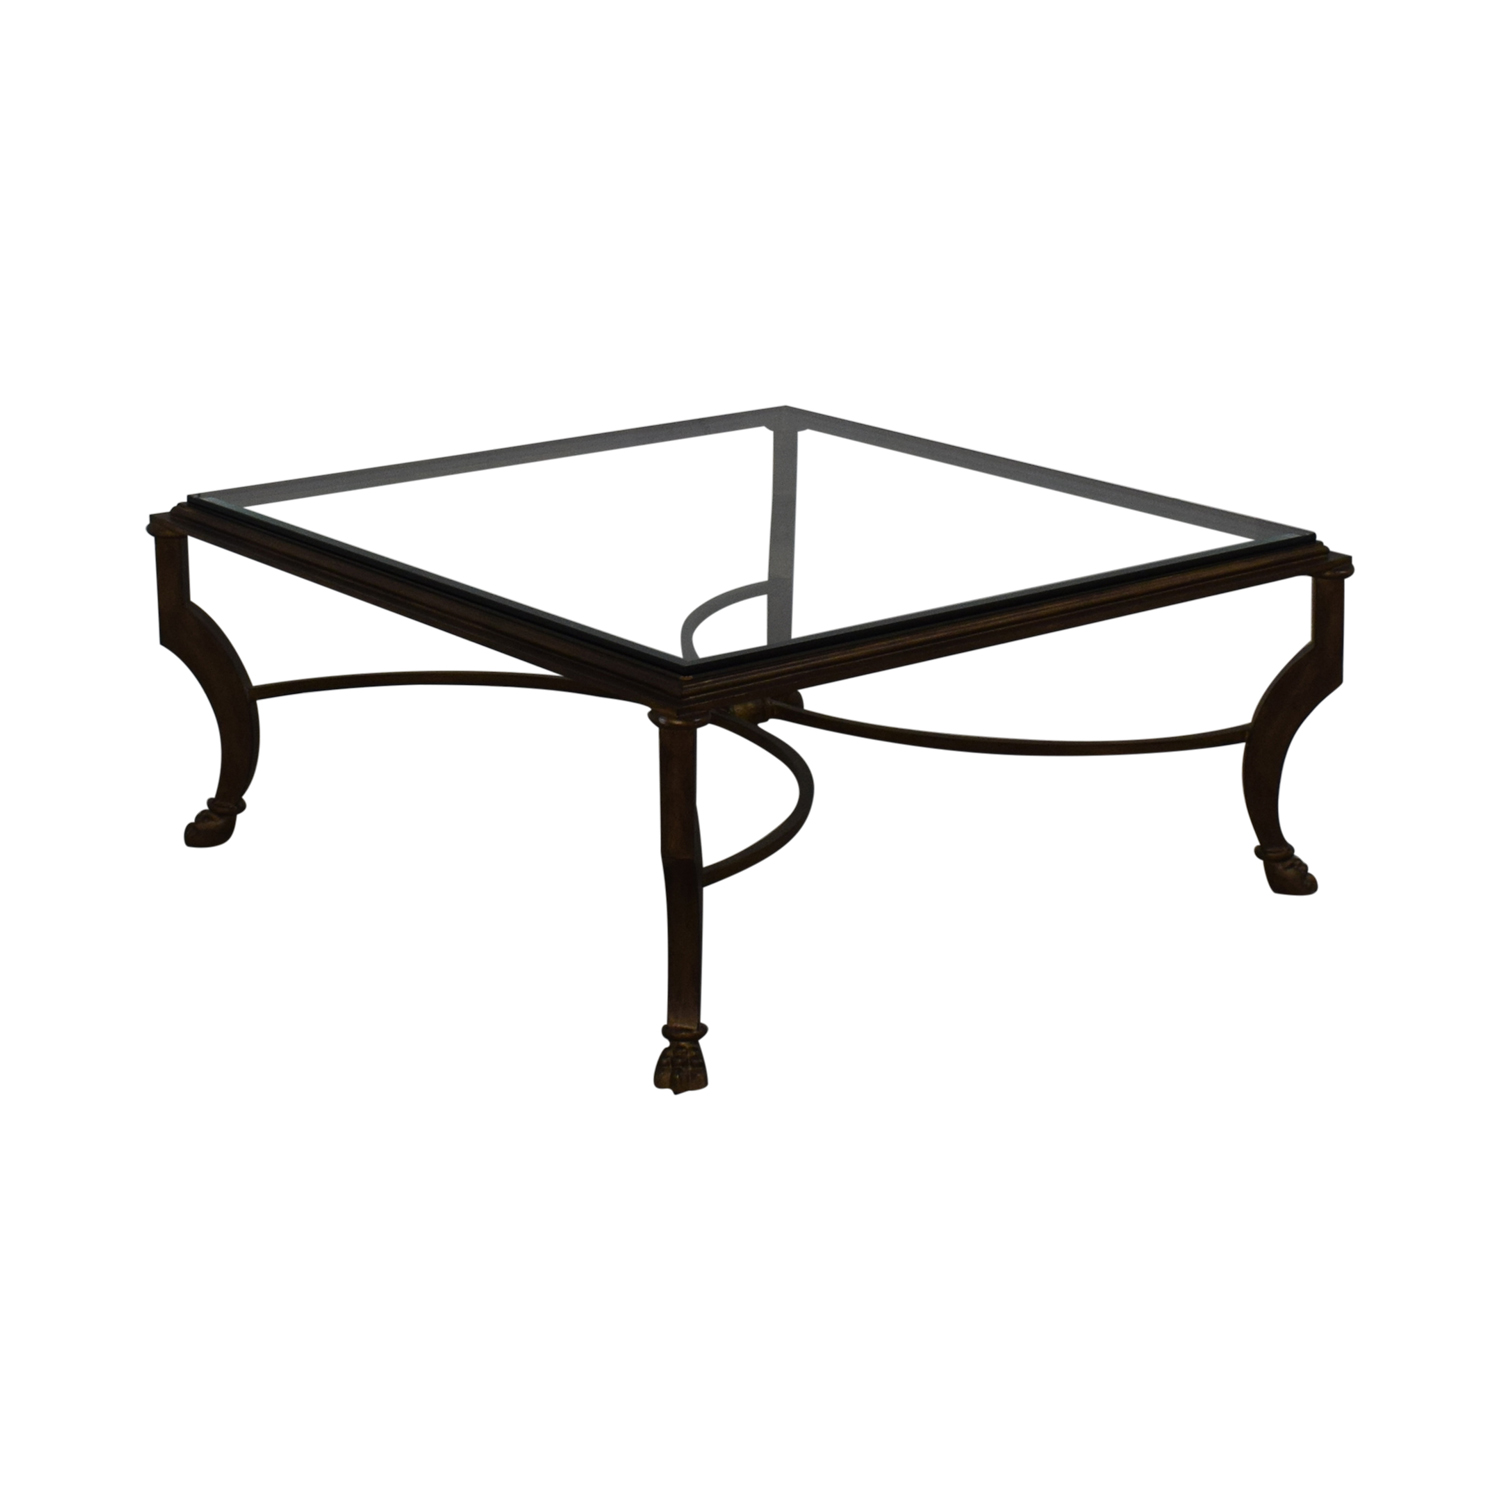 Kravet Kravet Glass Coffee Table on sale